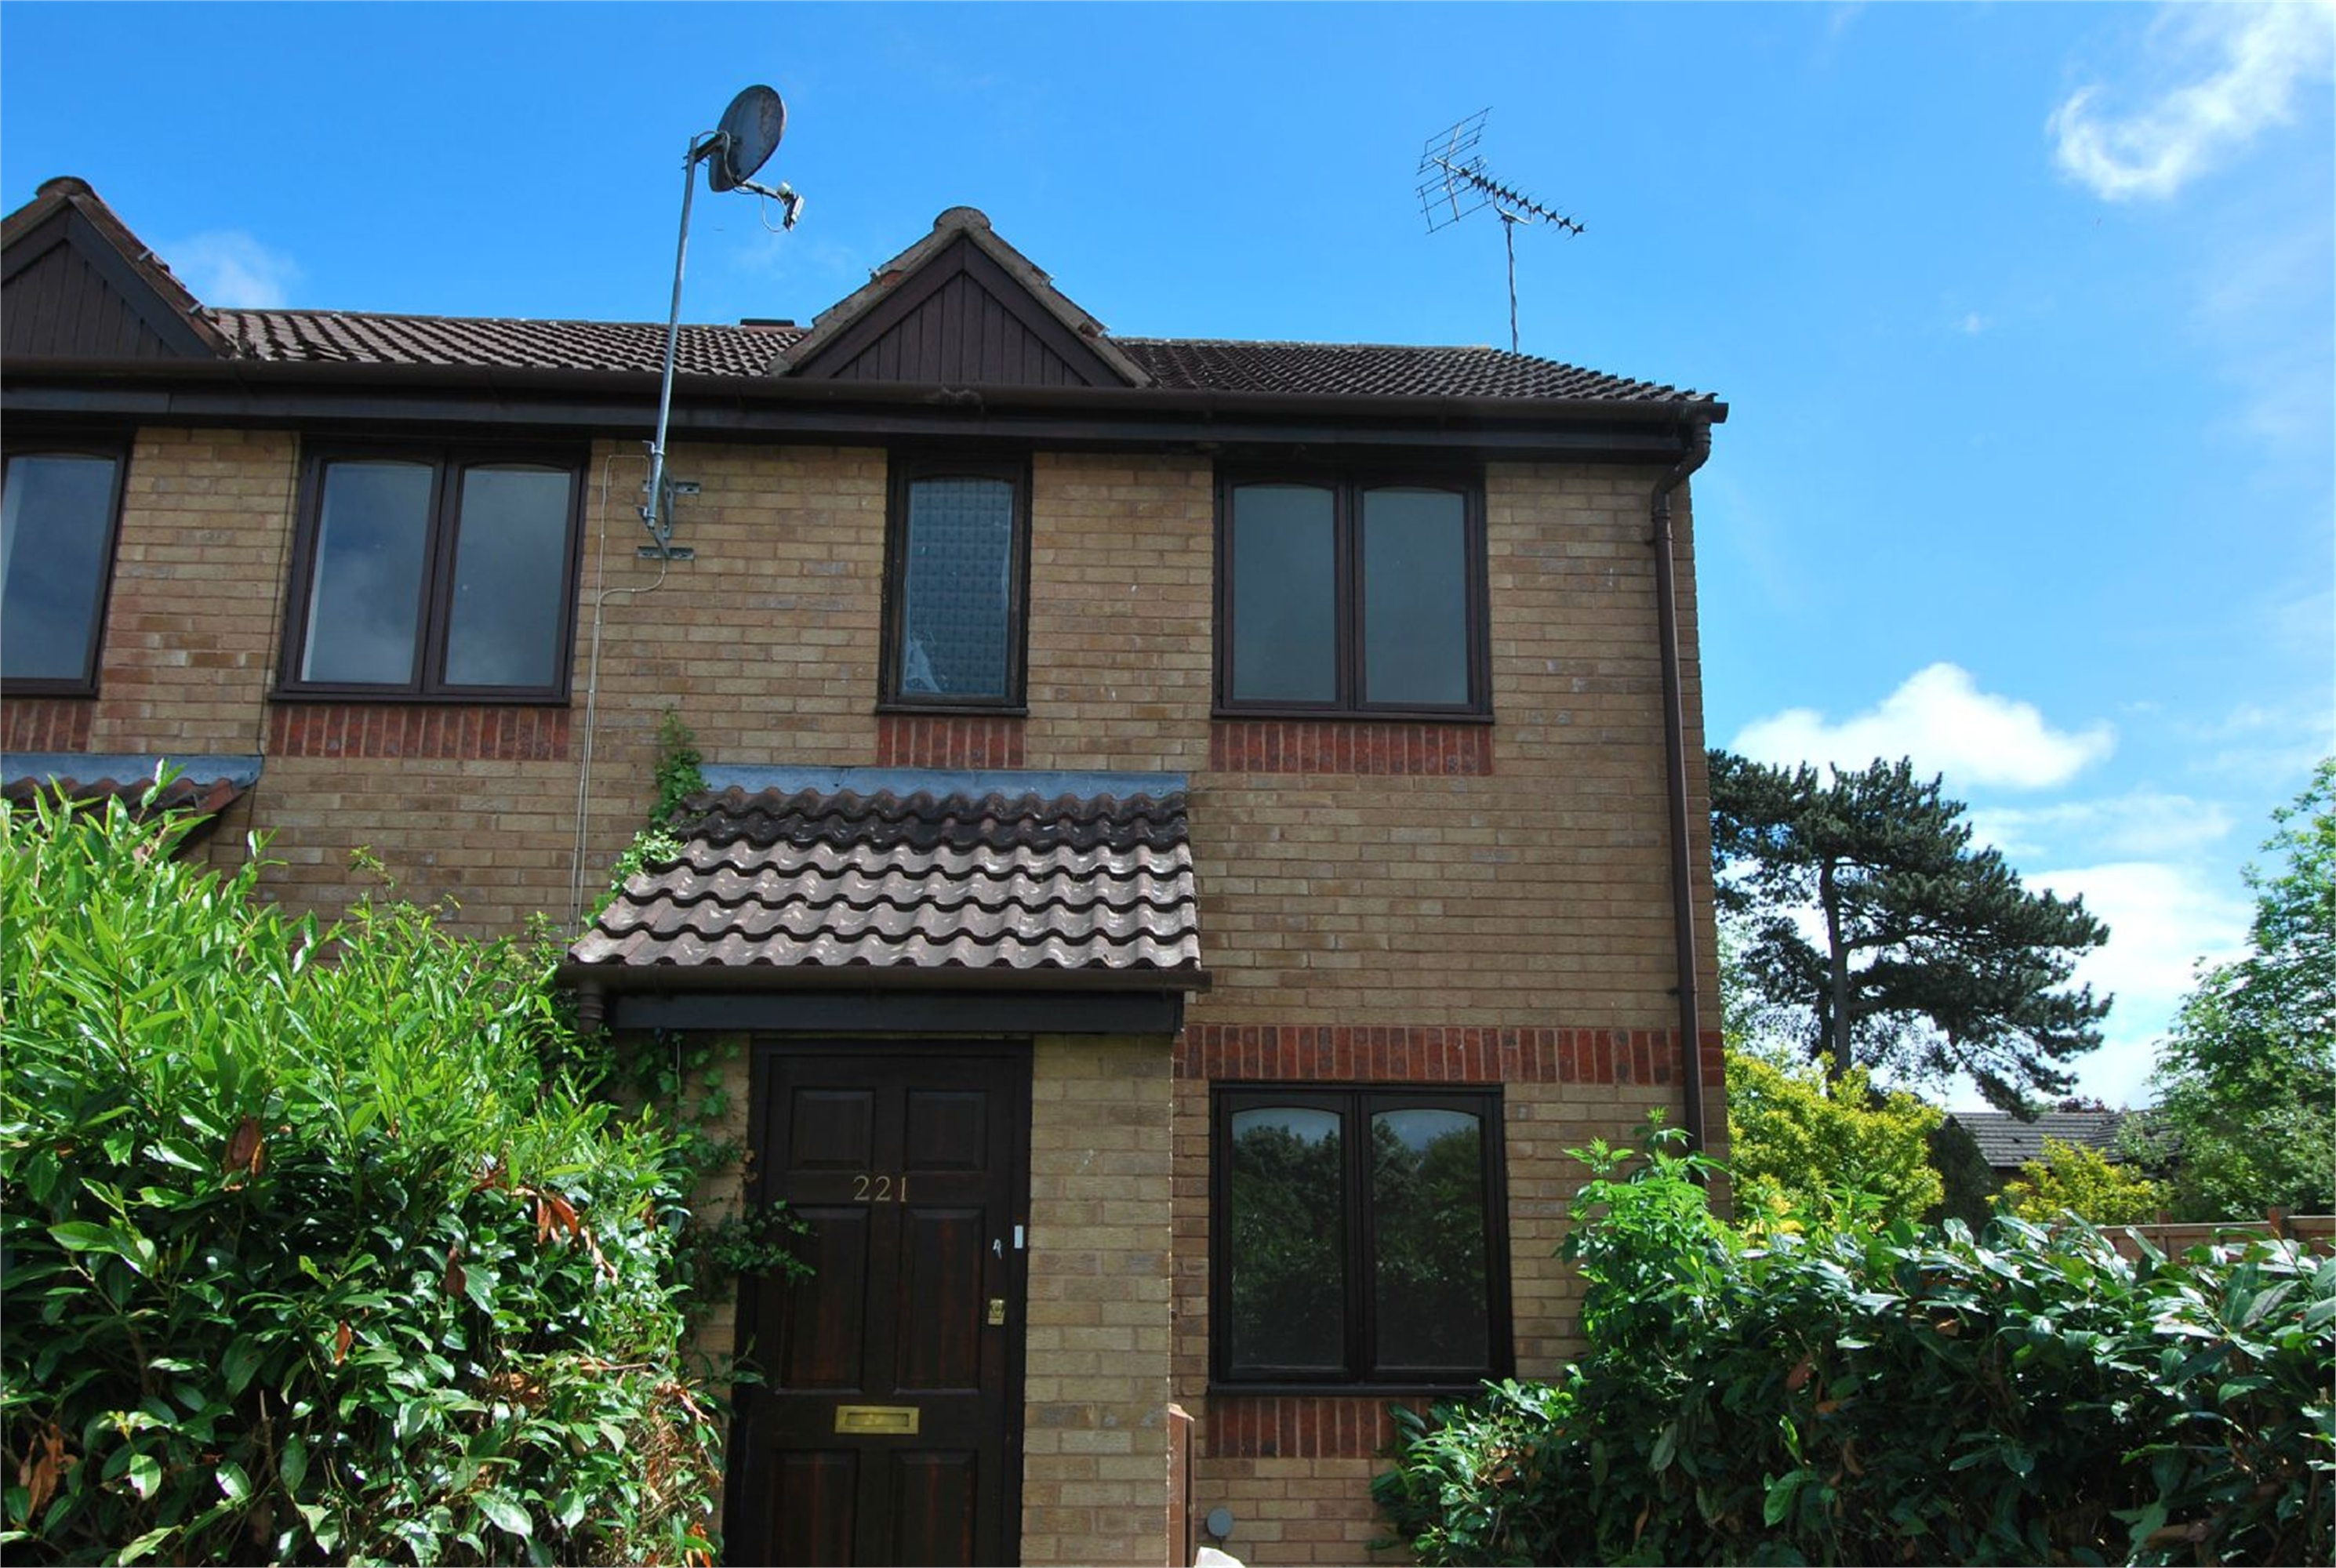 2 Bedrooms End Of Terrace House for sale in 221 The Mallards, Leominster, Herefordshire, HR6